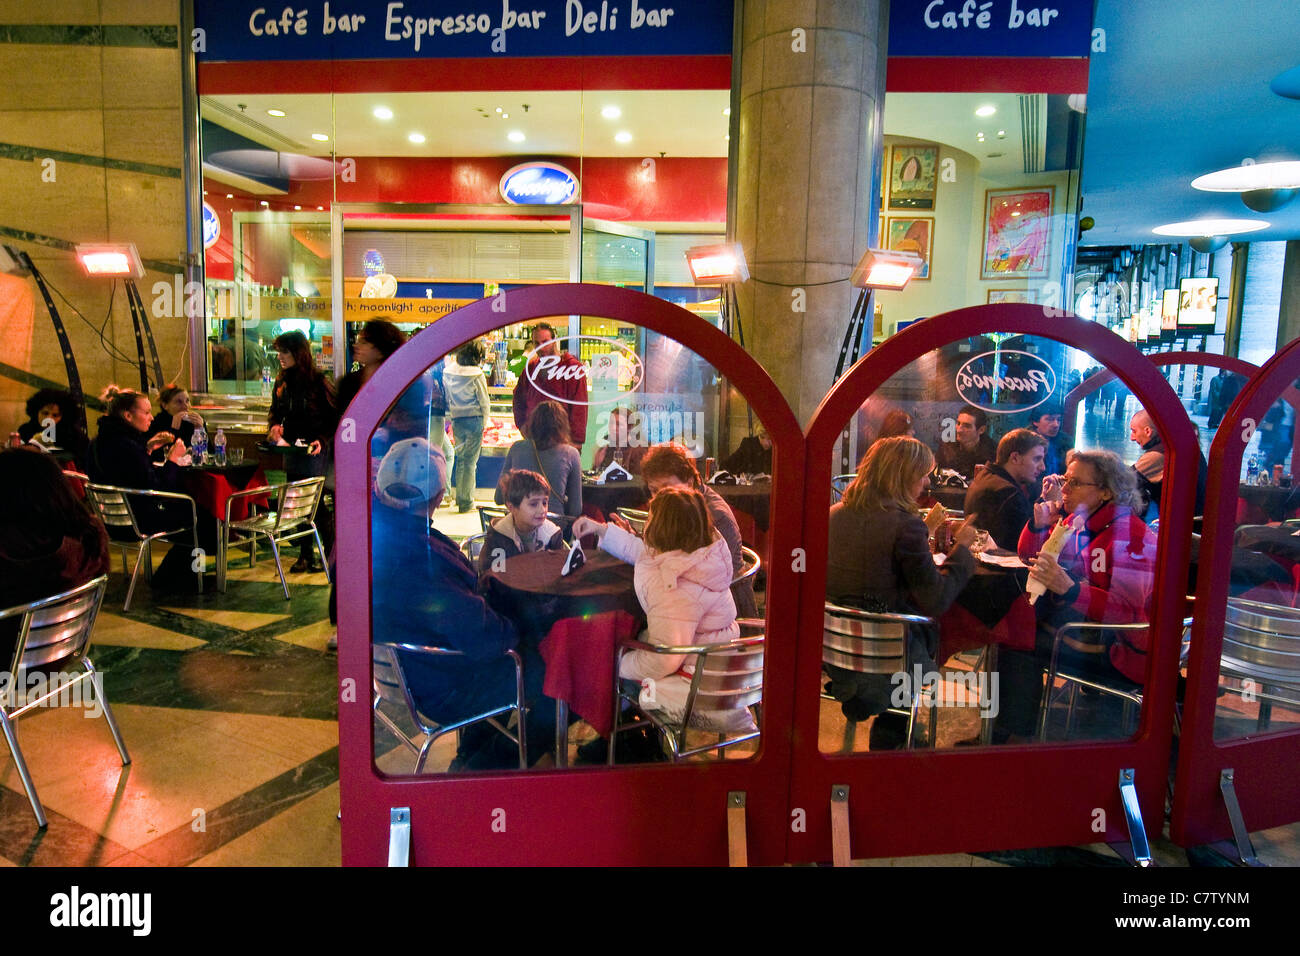 Italy, Lombardy, Milan. Cafe - Stock Image